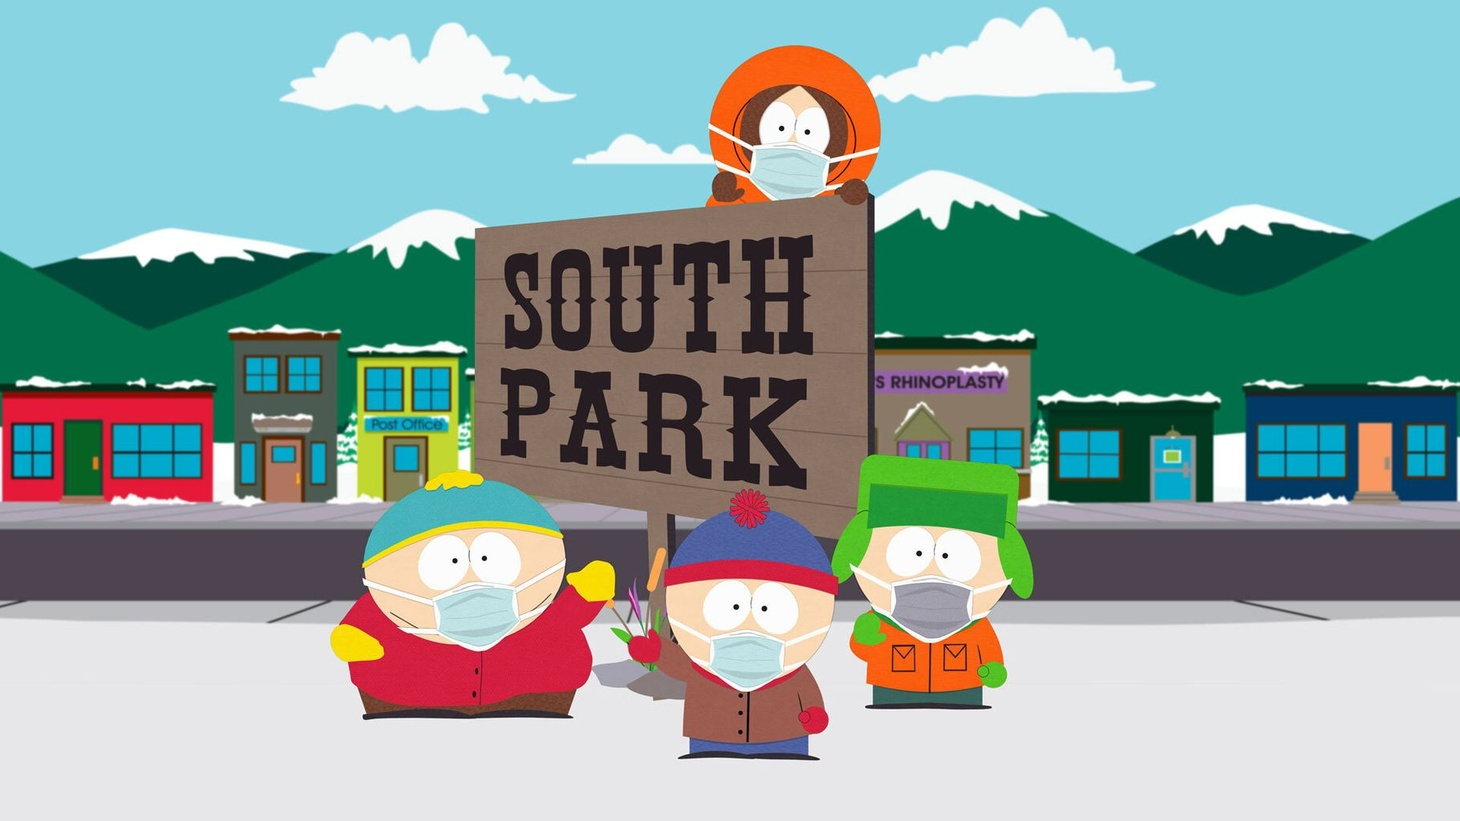 """""""South Park"""" creators Matt Stone and Trey Parker made a $900 million deal with ViacomCBS that includes a whopping 14 movies for Paramount+."""